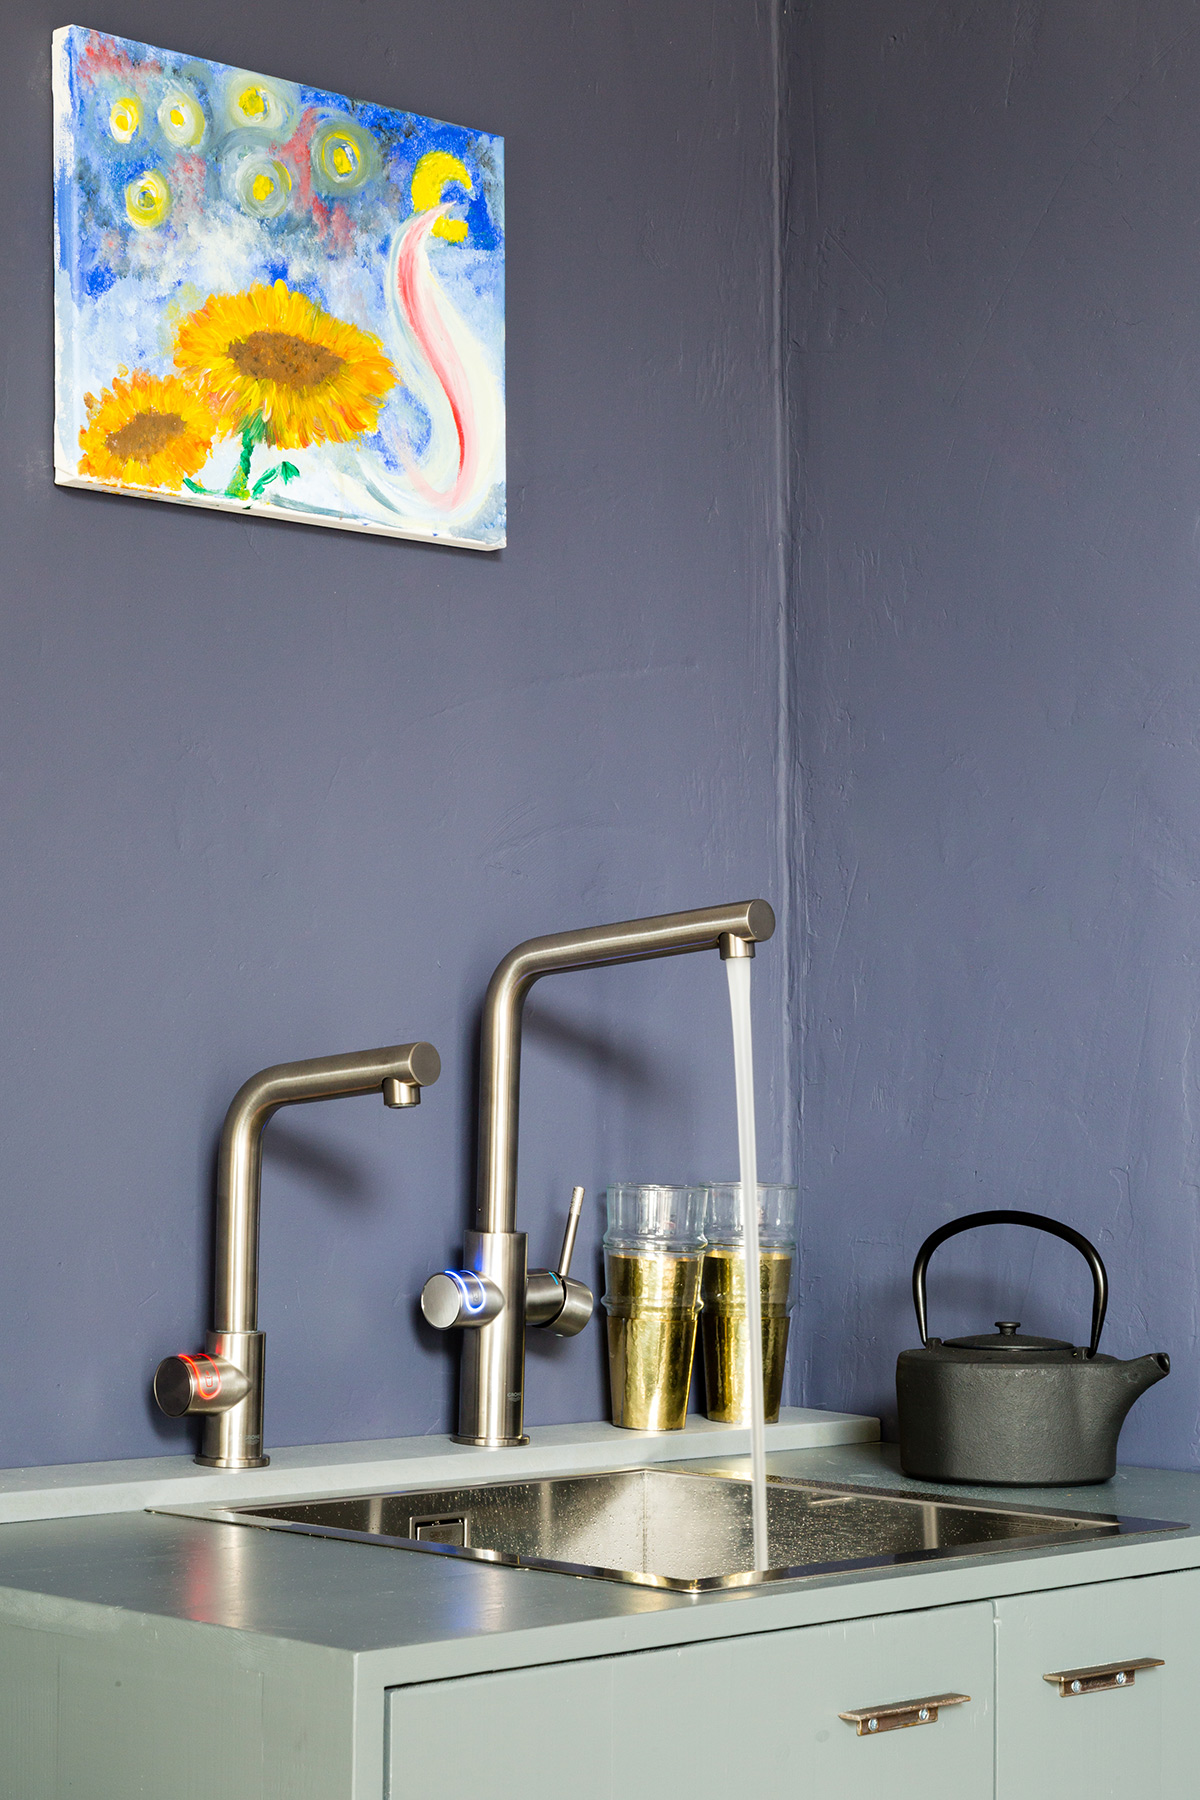 Keukenkranen GROHE blue en red